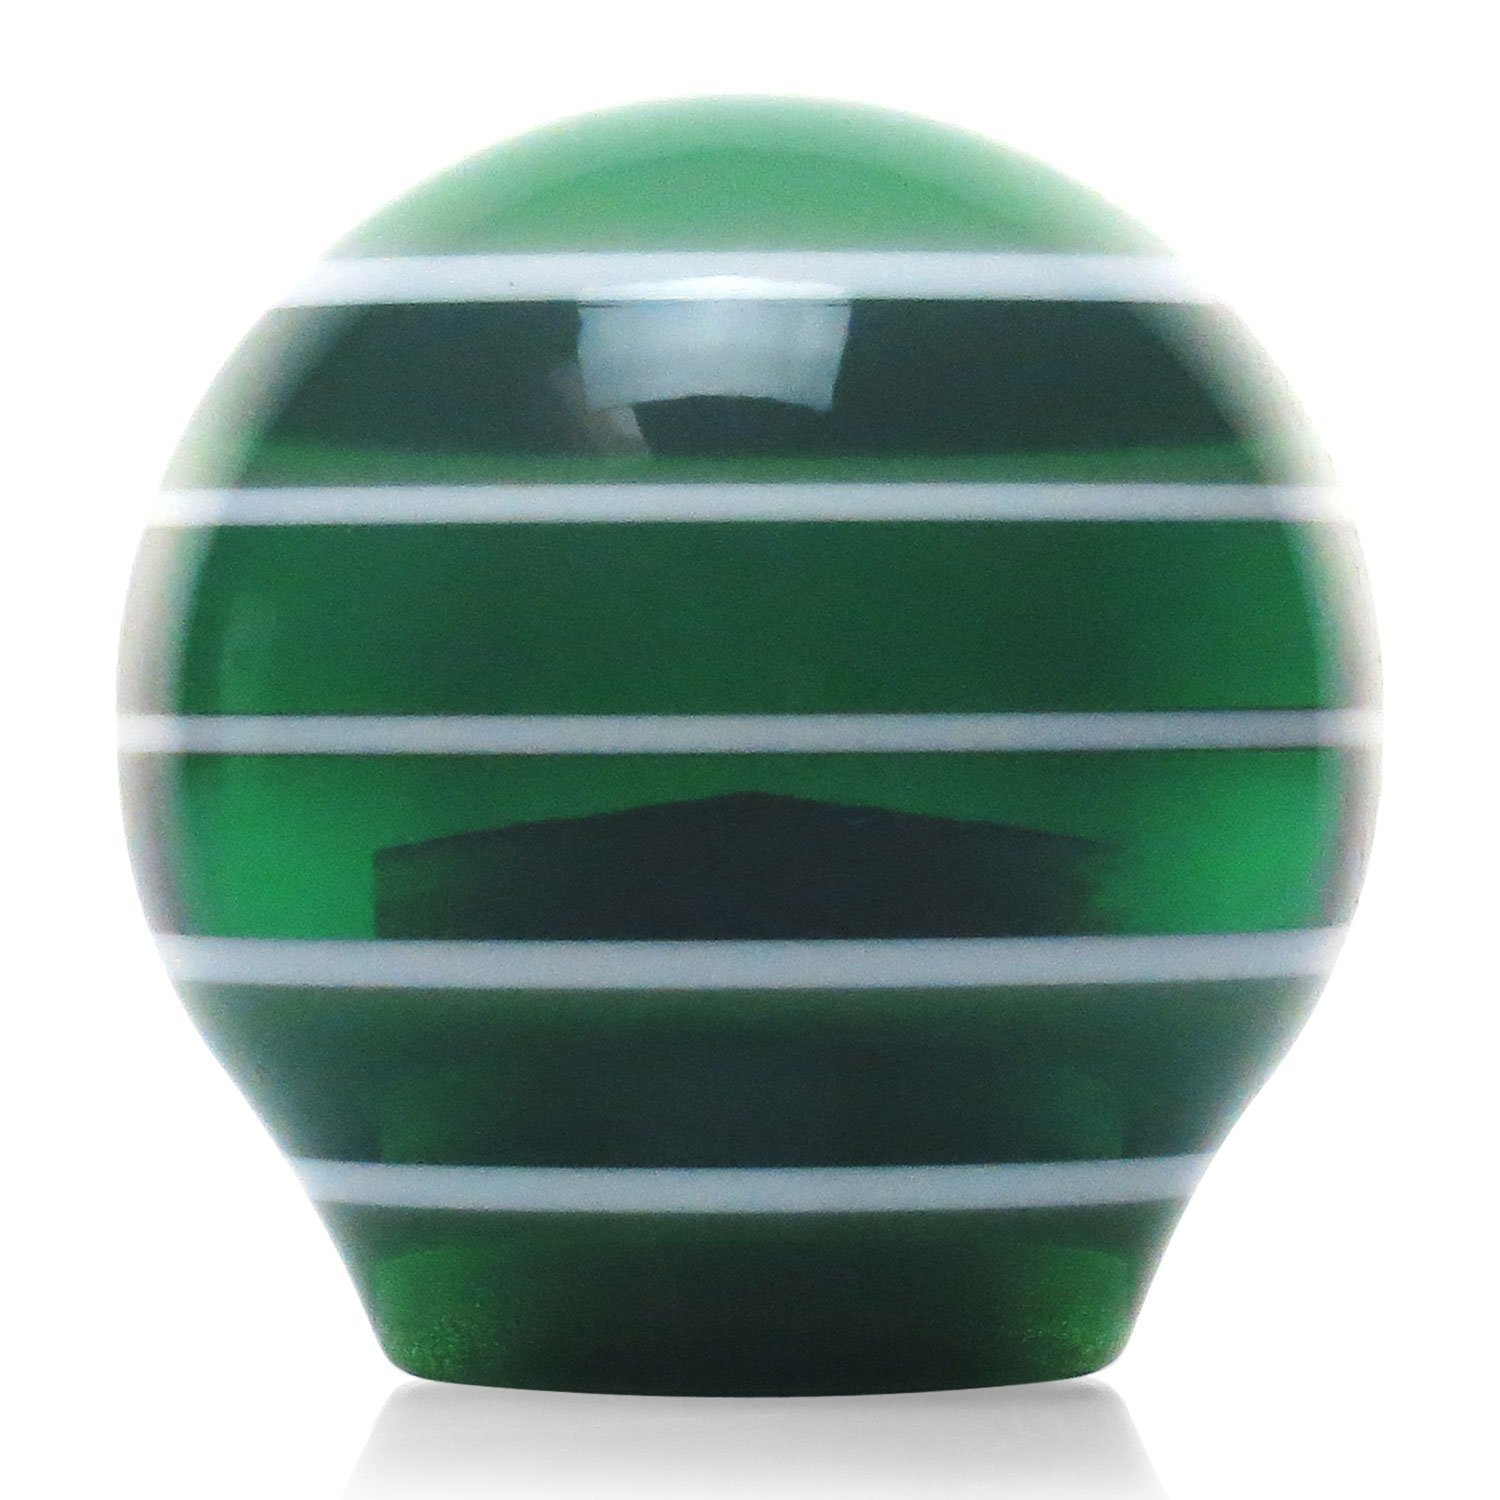 American Shifter 275813 Shift Knob Orange FCK It Green Stripe with M16 x 1.5 Insert